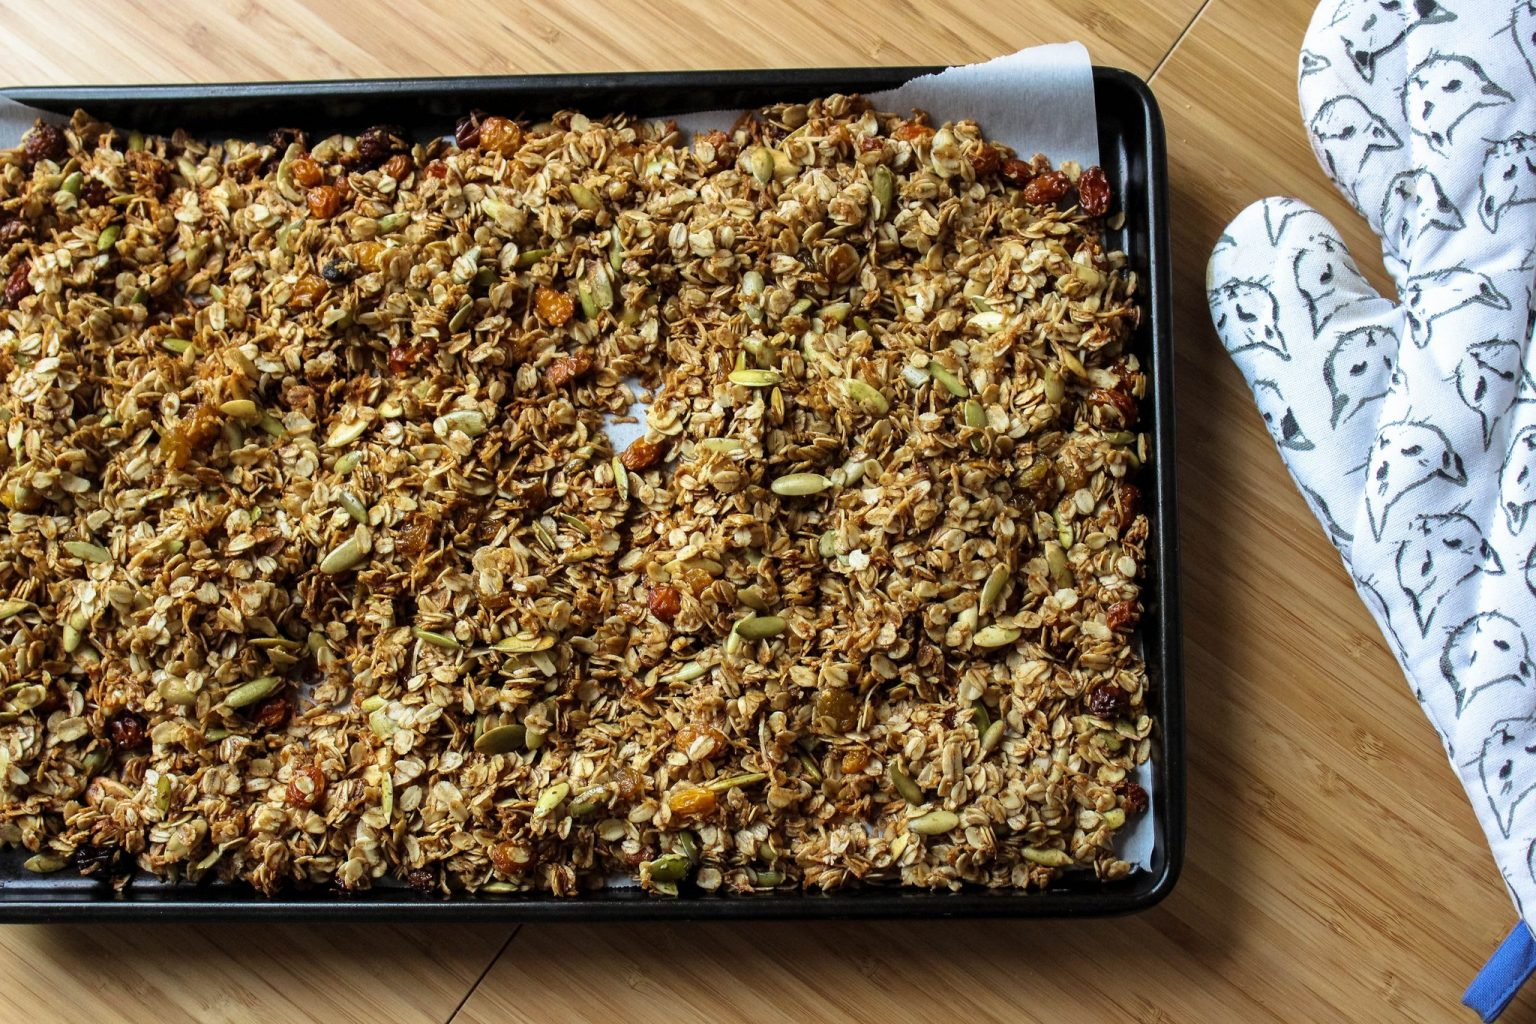 cannabis-infused granola